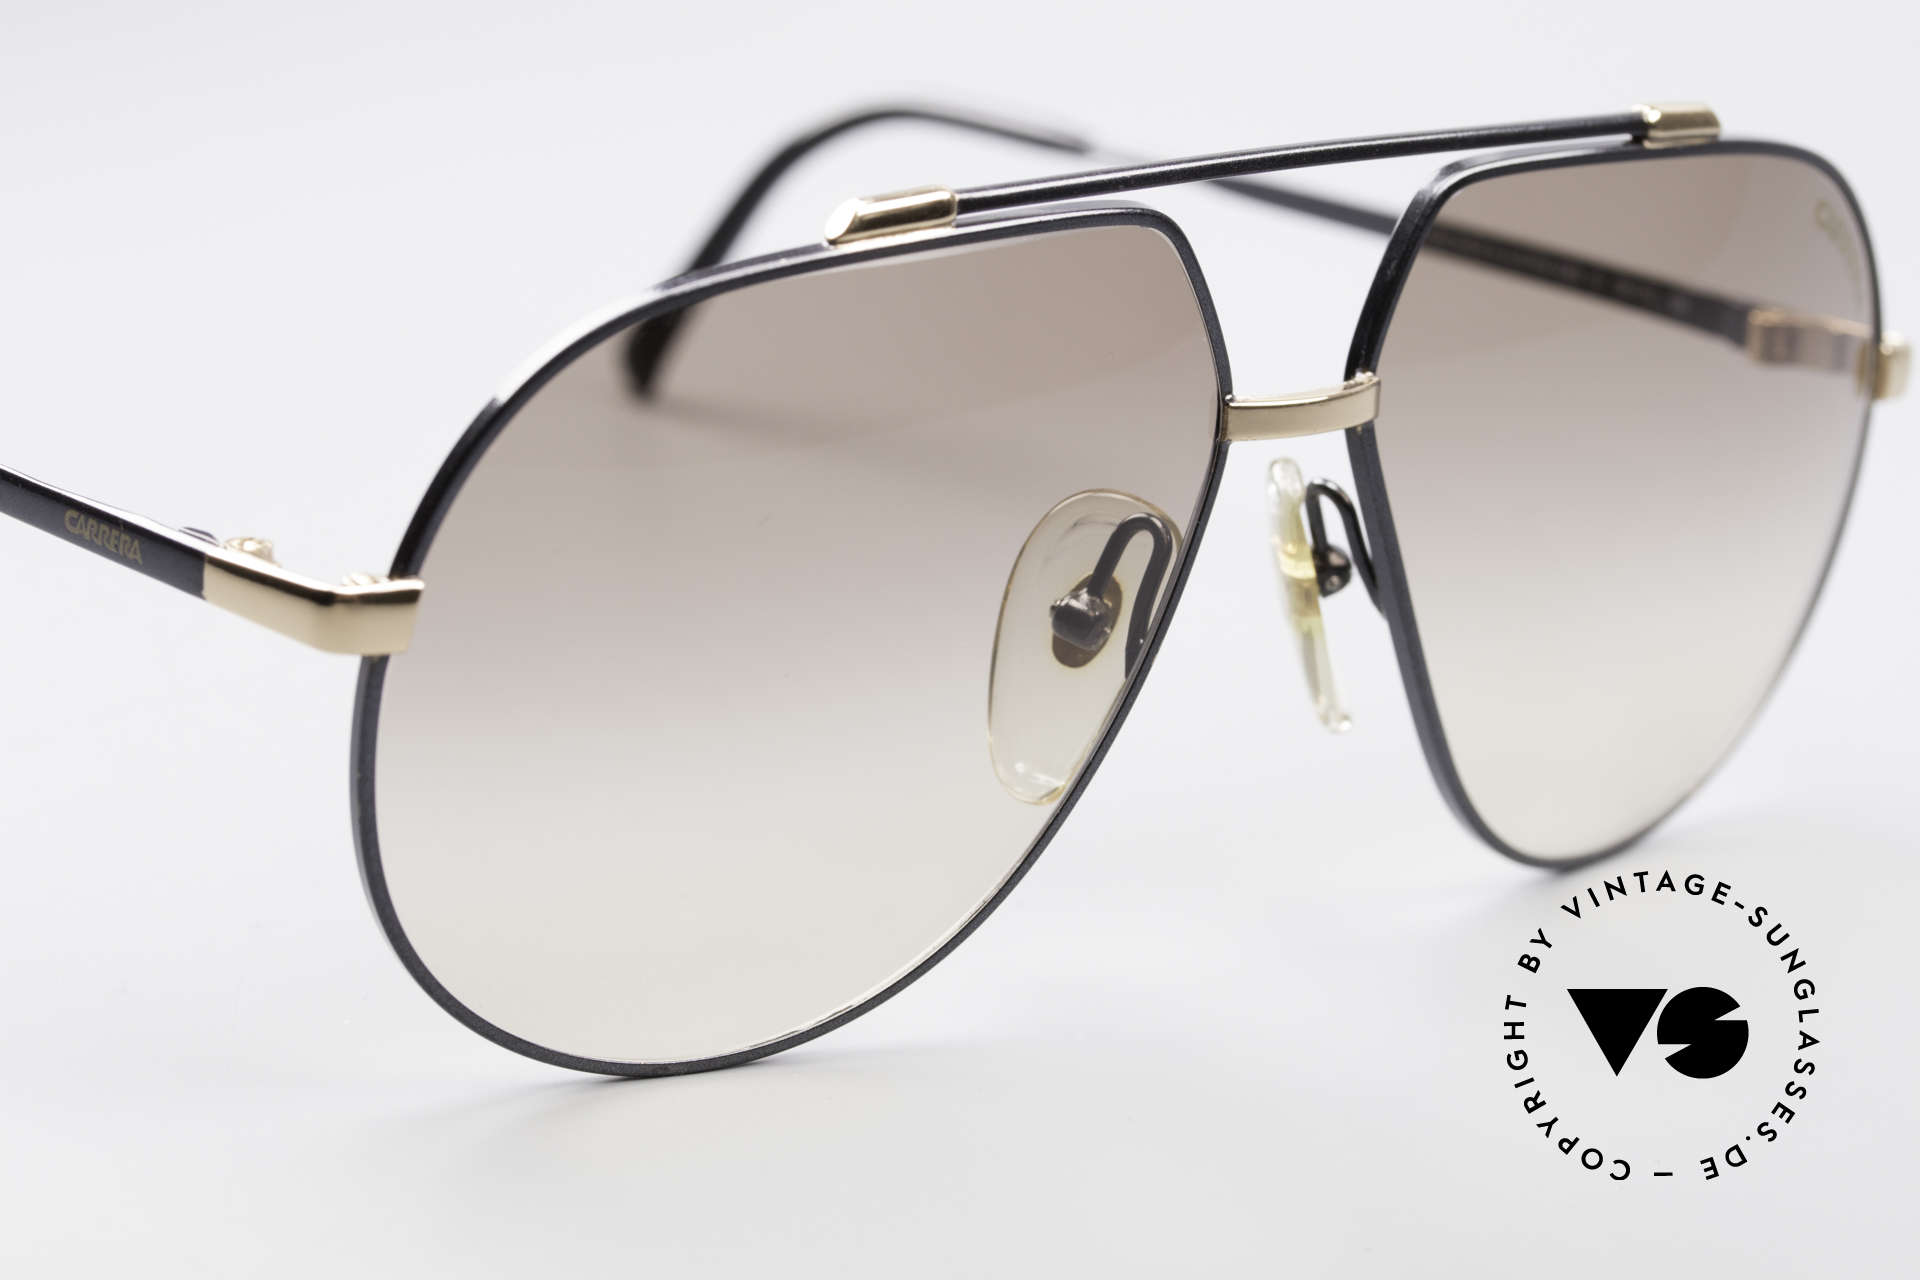 Carrera 5369 90's Men's Sunglasses, never worn (like all our rare vintage Carrera shades), Made for Men